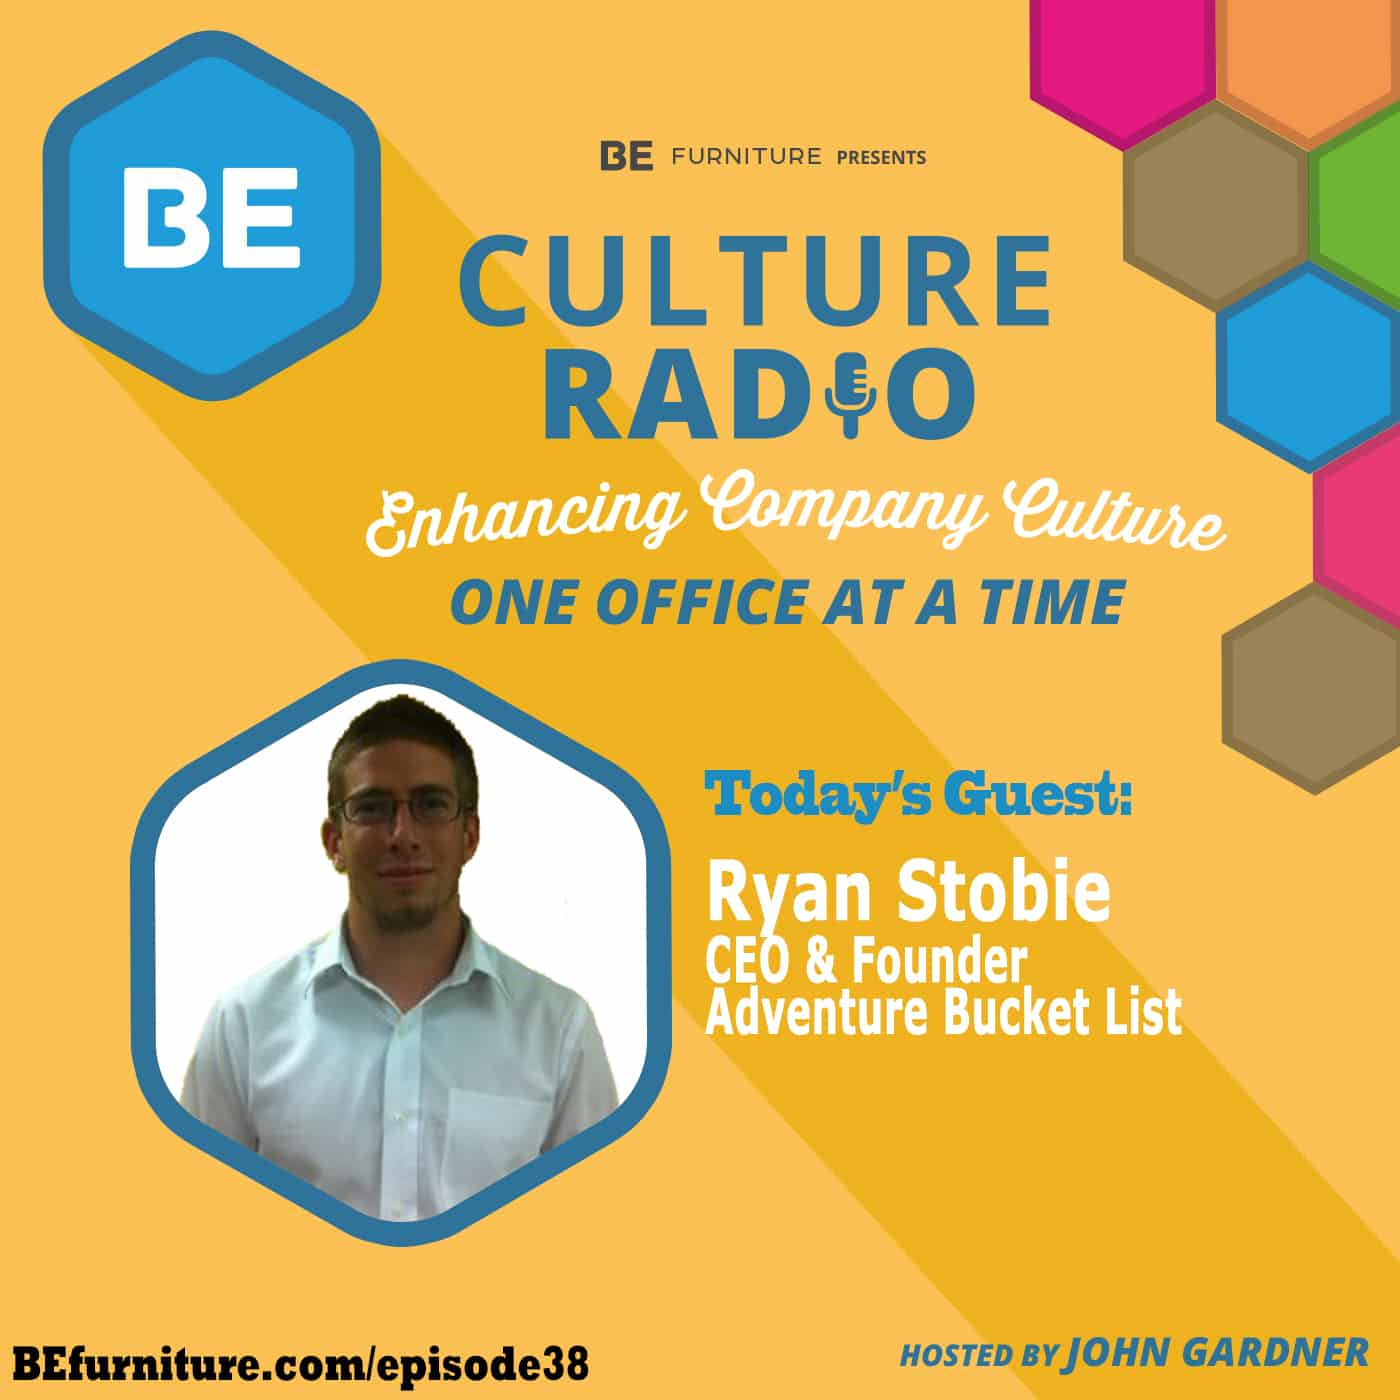 Ryan Stobie - CEO & Founder, Adventure Bucket List